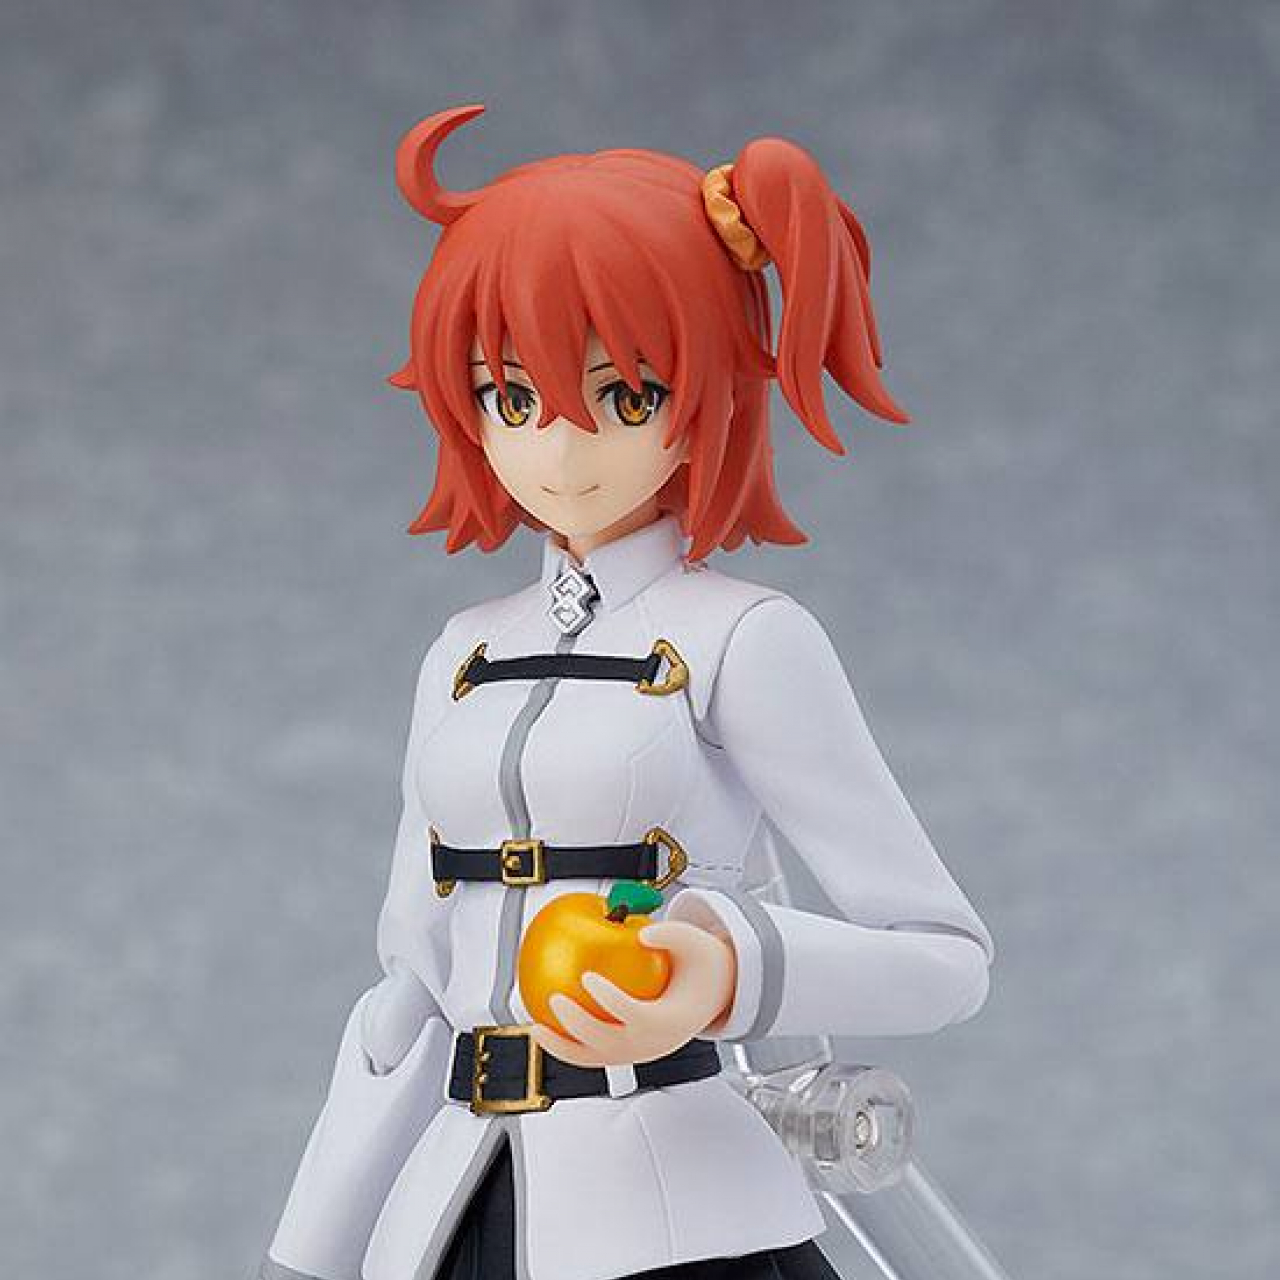 Fate/Grand Order Figma Action Figure Master/Female Protagonist 15 cm